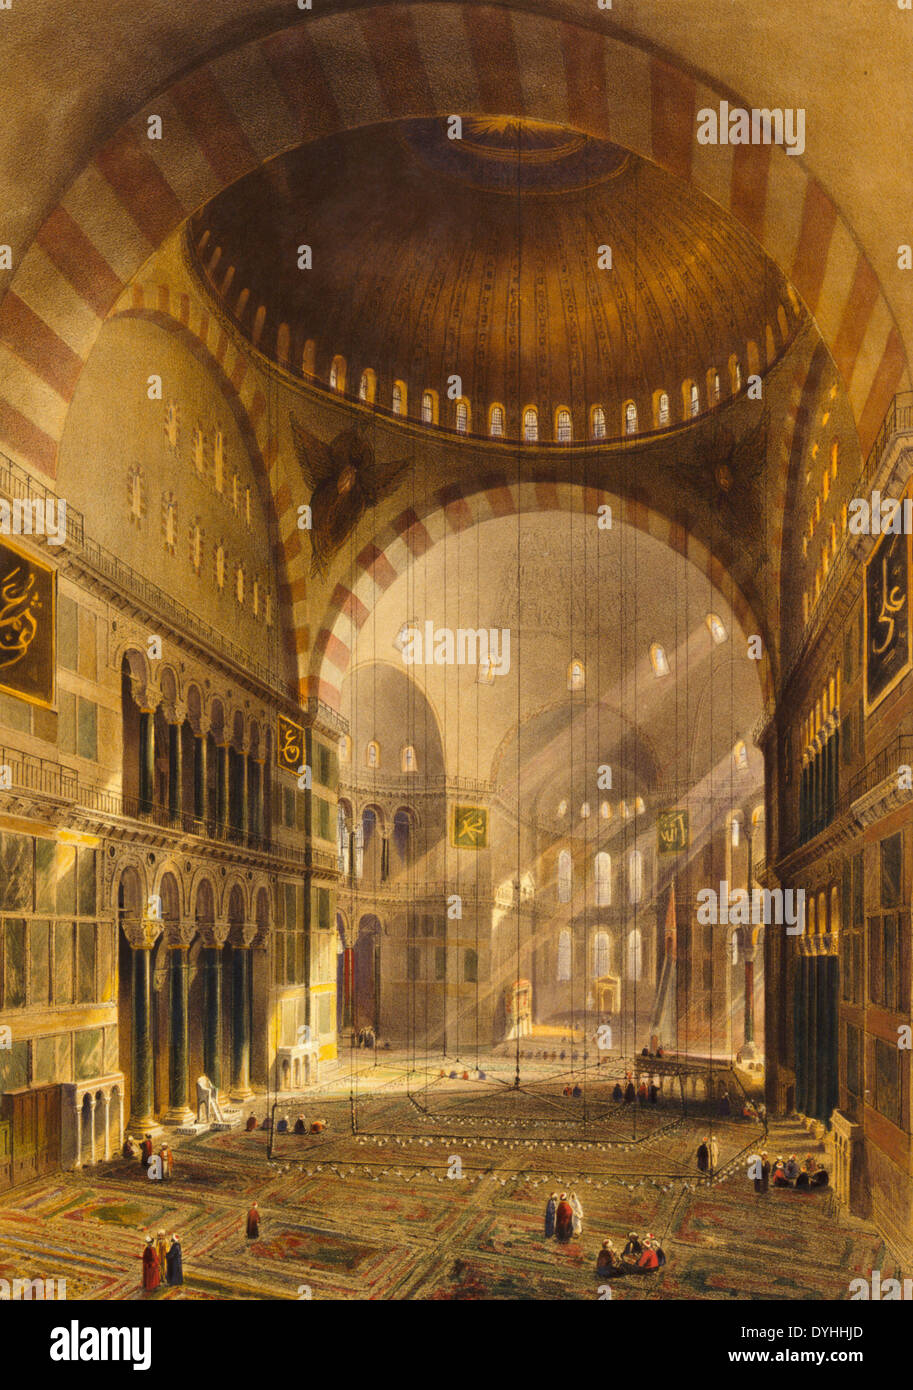 L'intérieur de la mosquée, avant sa restauration - nave of Ayasofya Mosque, formerly the Church of Hagia Sophia, facing east, before restoration; with groups of men in traditional dress. 1852 - Stock Image